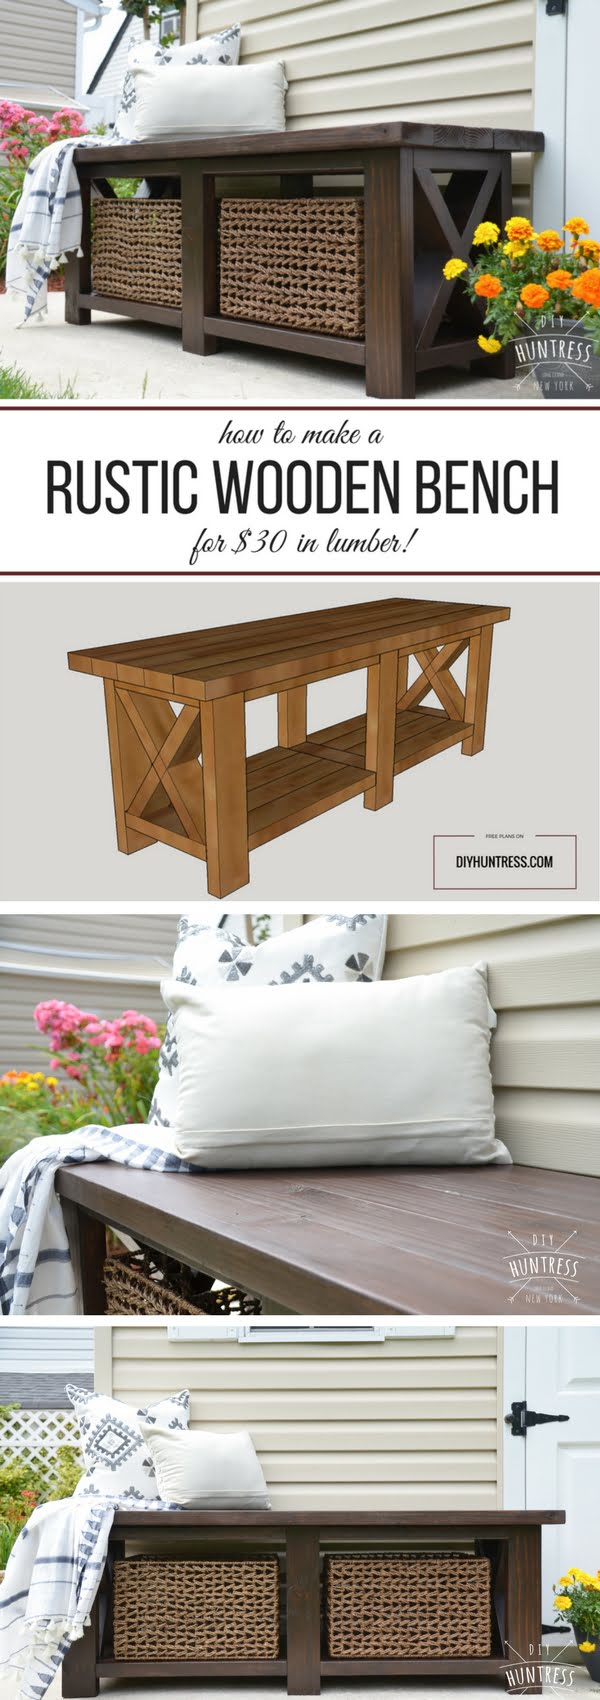 Check out the tutorial on how to make a DIY rustic bench